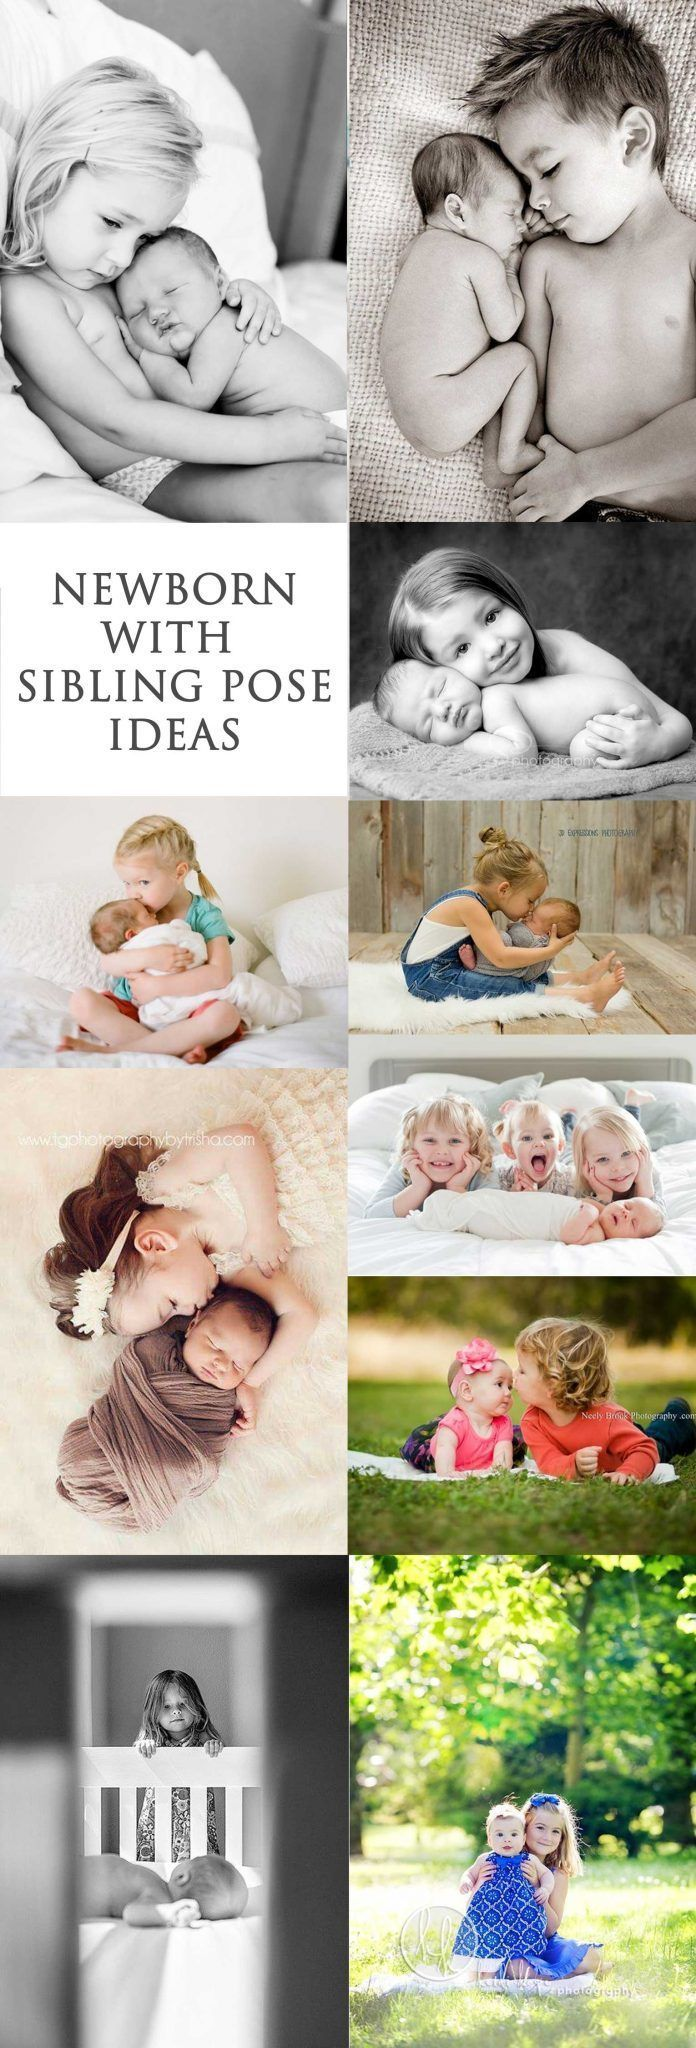 2019 Trend of Newborn Photography Ideas & Tips for…